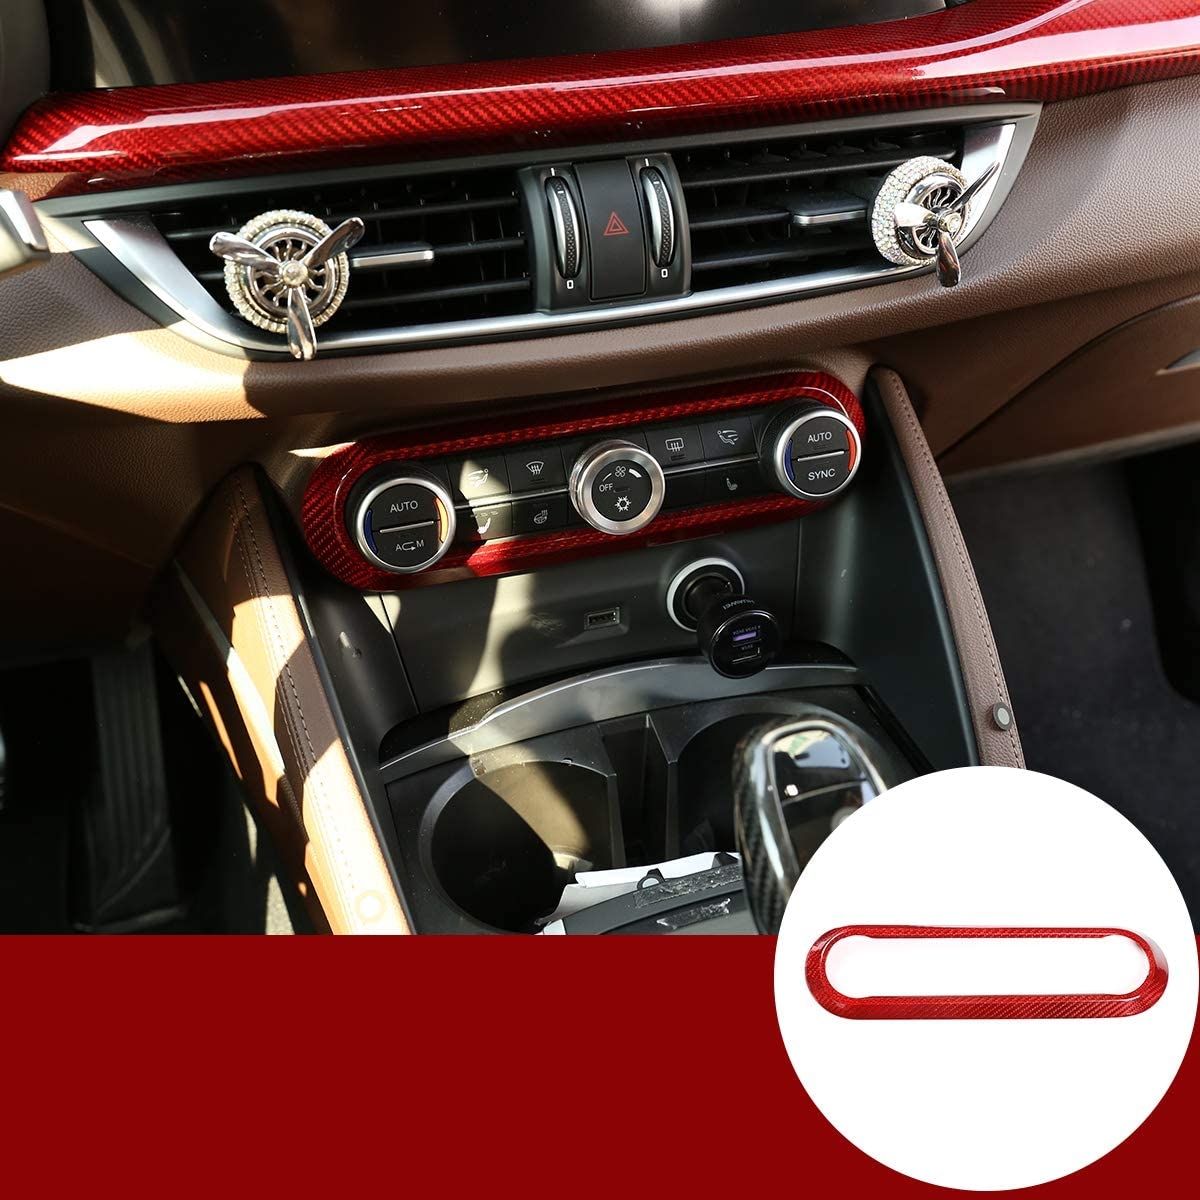 YIWANG 100% Red Real Carbon Fiber Center Air Conditioning Adjustment Frame Trim for Alfa Romeo Giulia Stelvio 2017 2018 2019 Auto Accessories